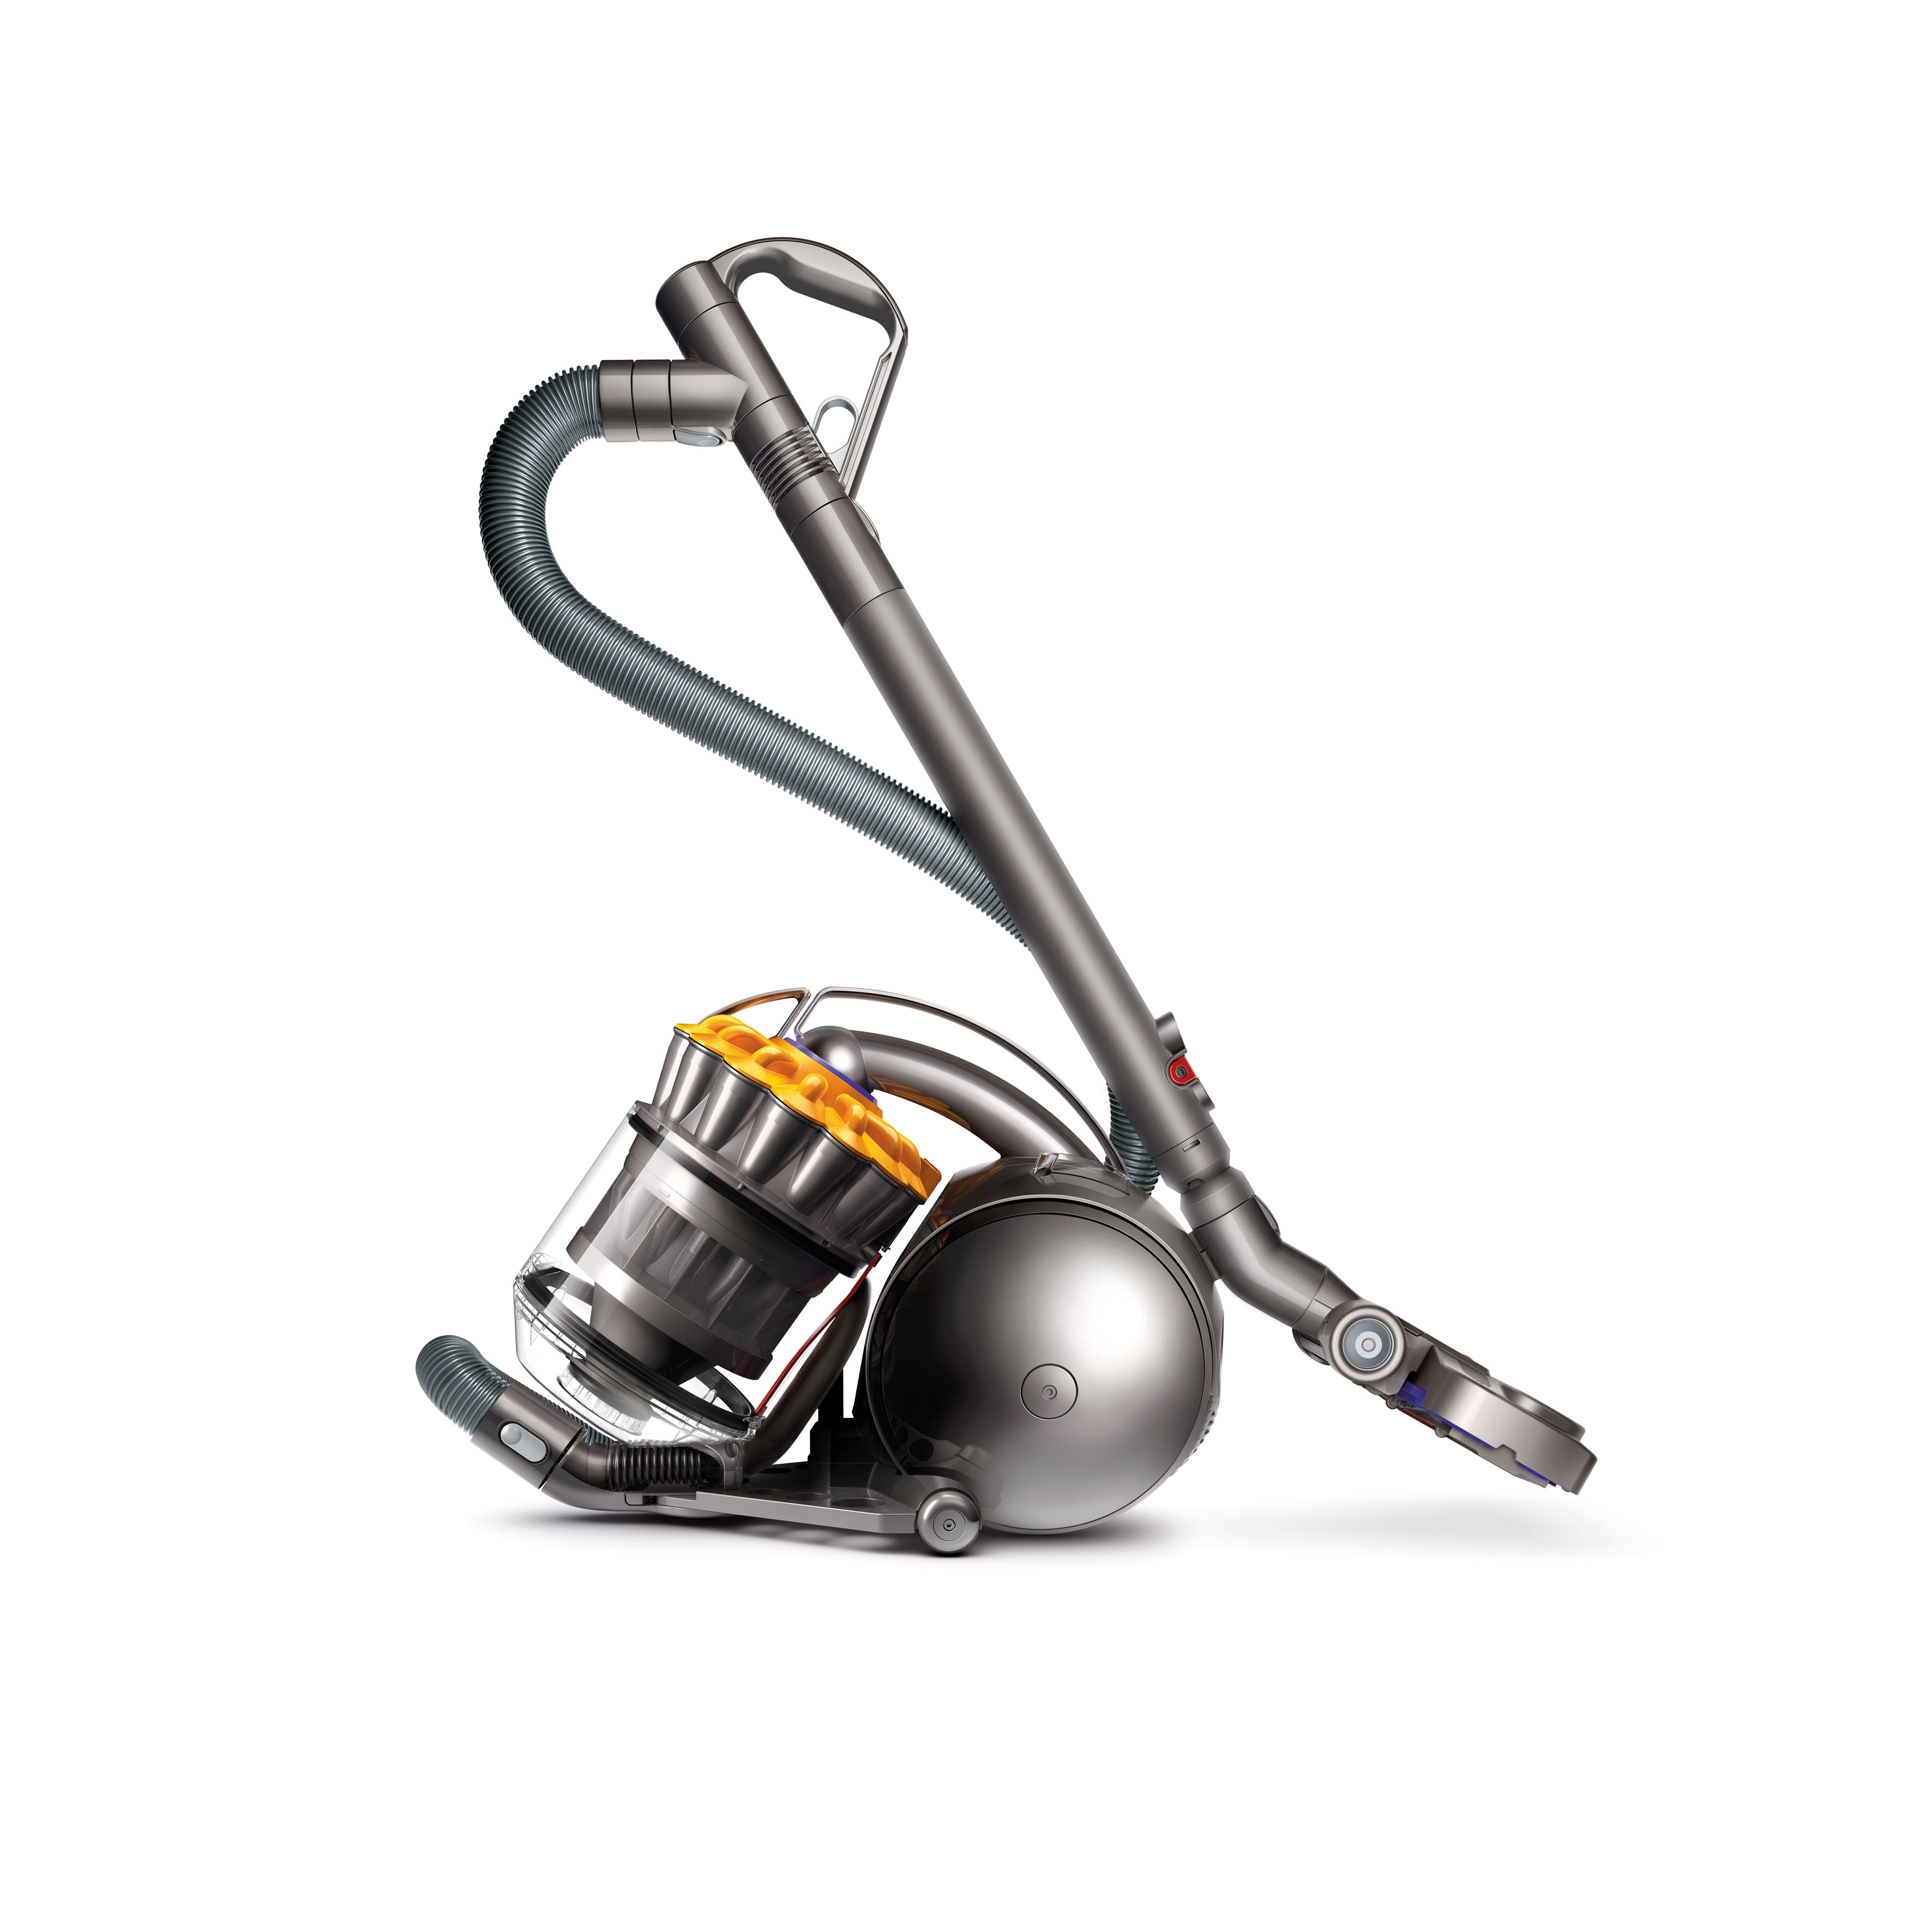 multi is floor items have must spring the a cleaning dyson pin ball